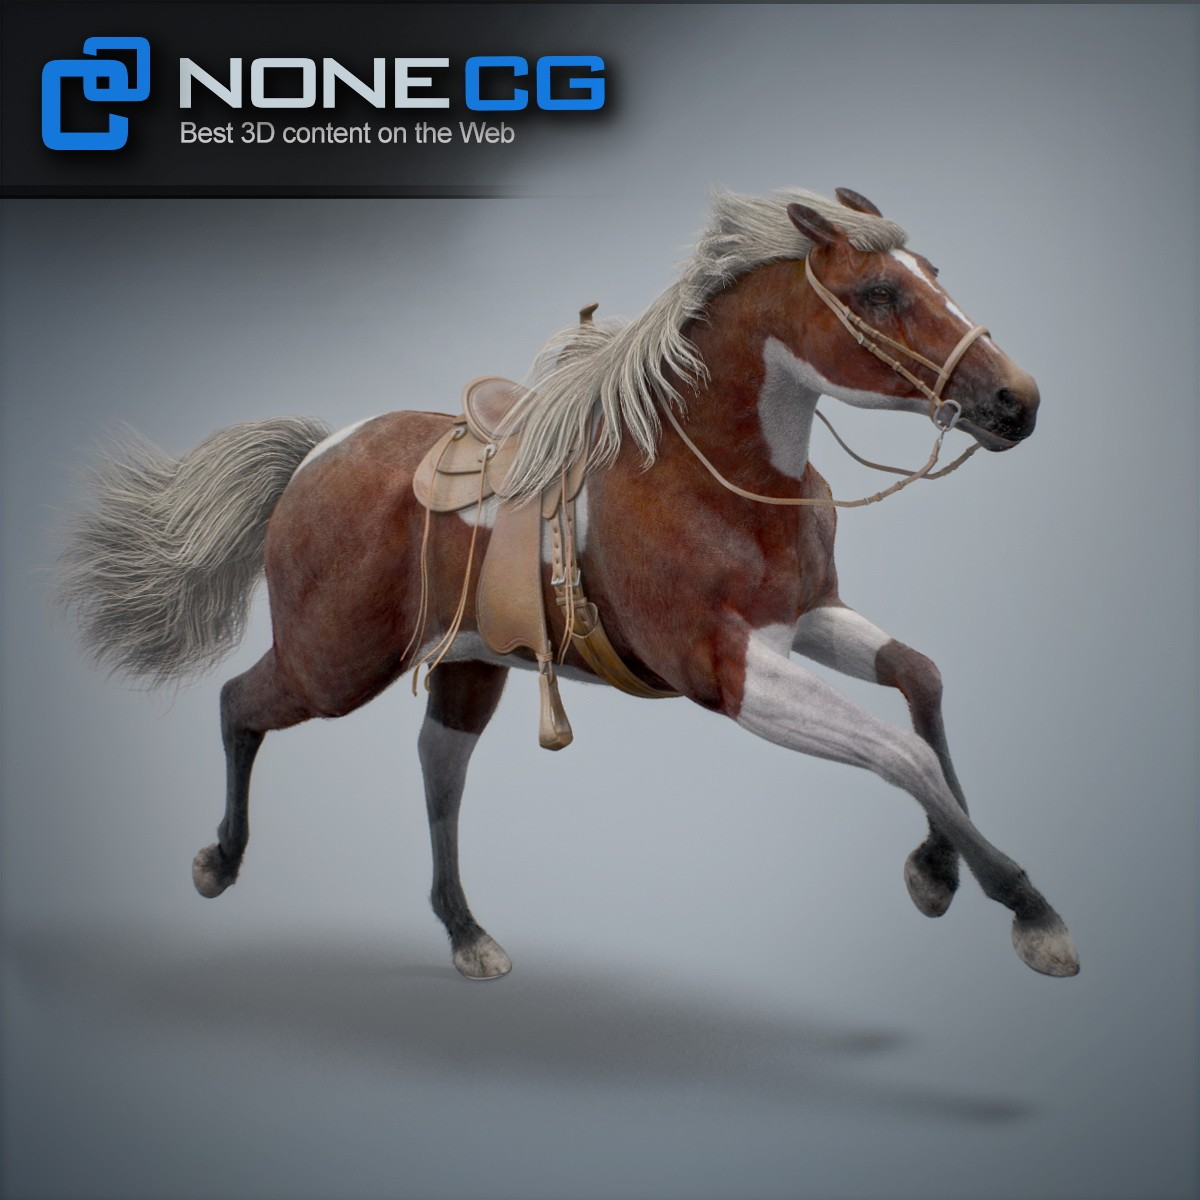 Rigs  Animated Horse 3D Model by NoneCG  Thinking Animation